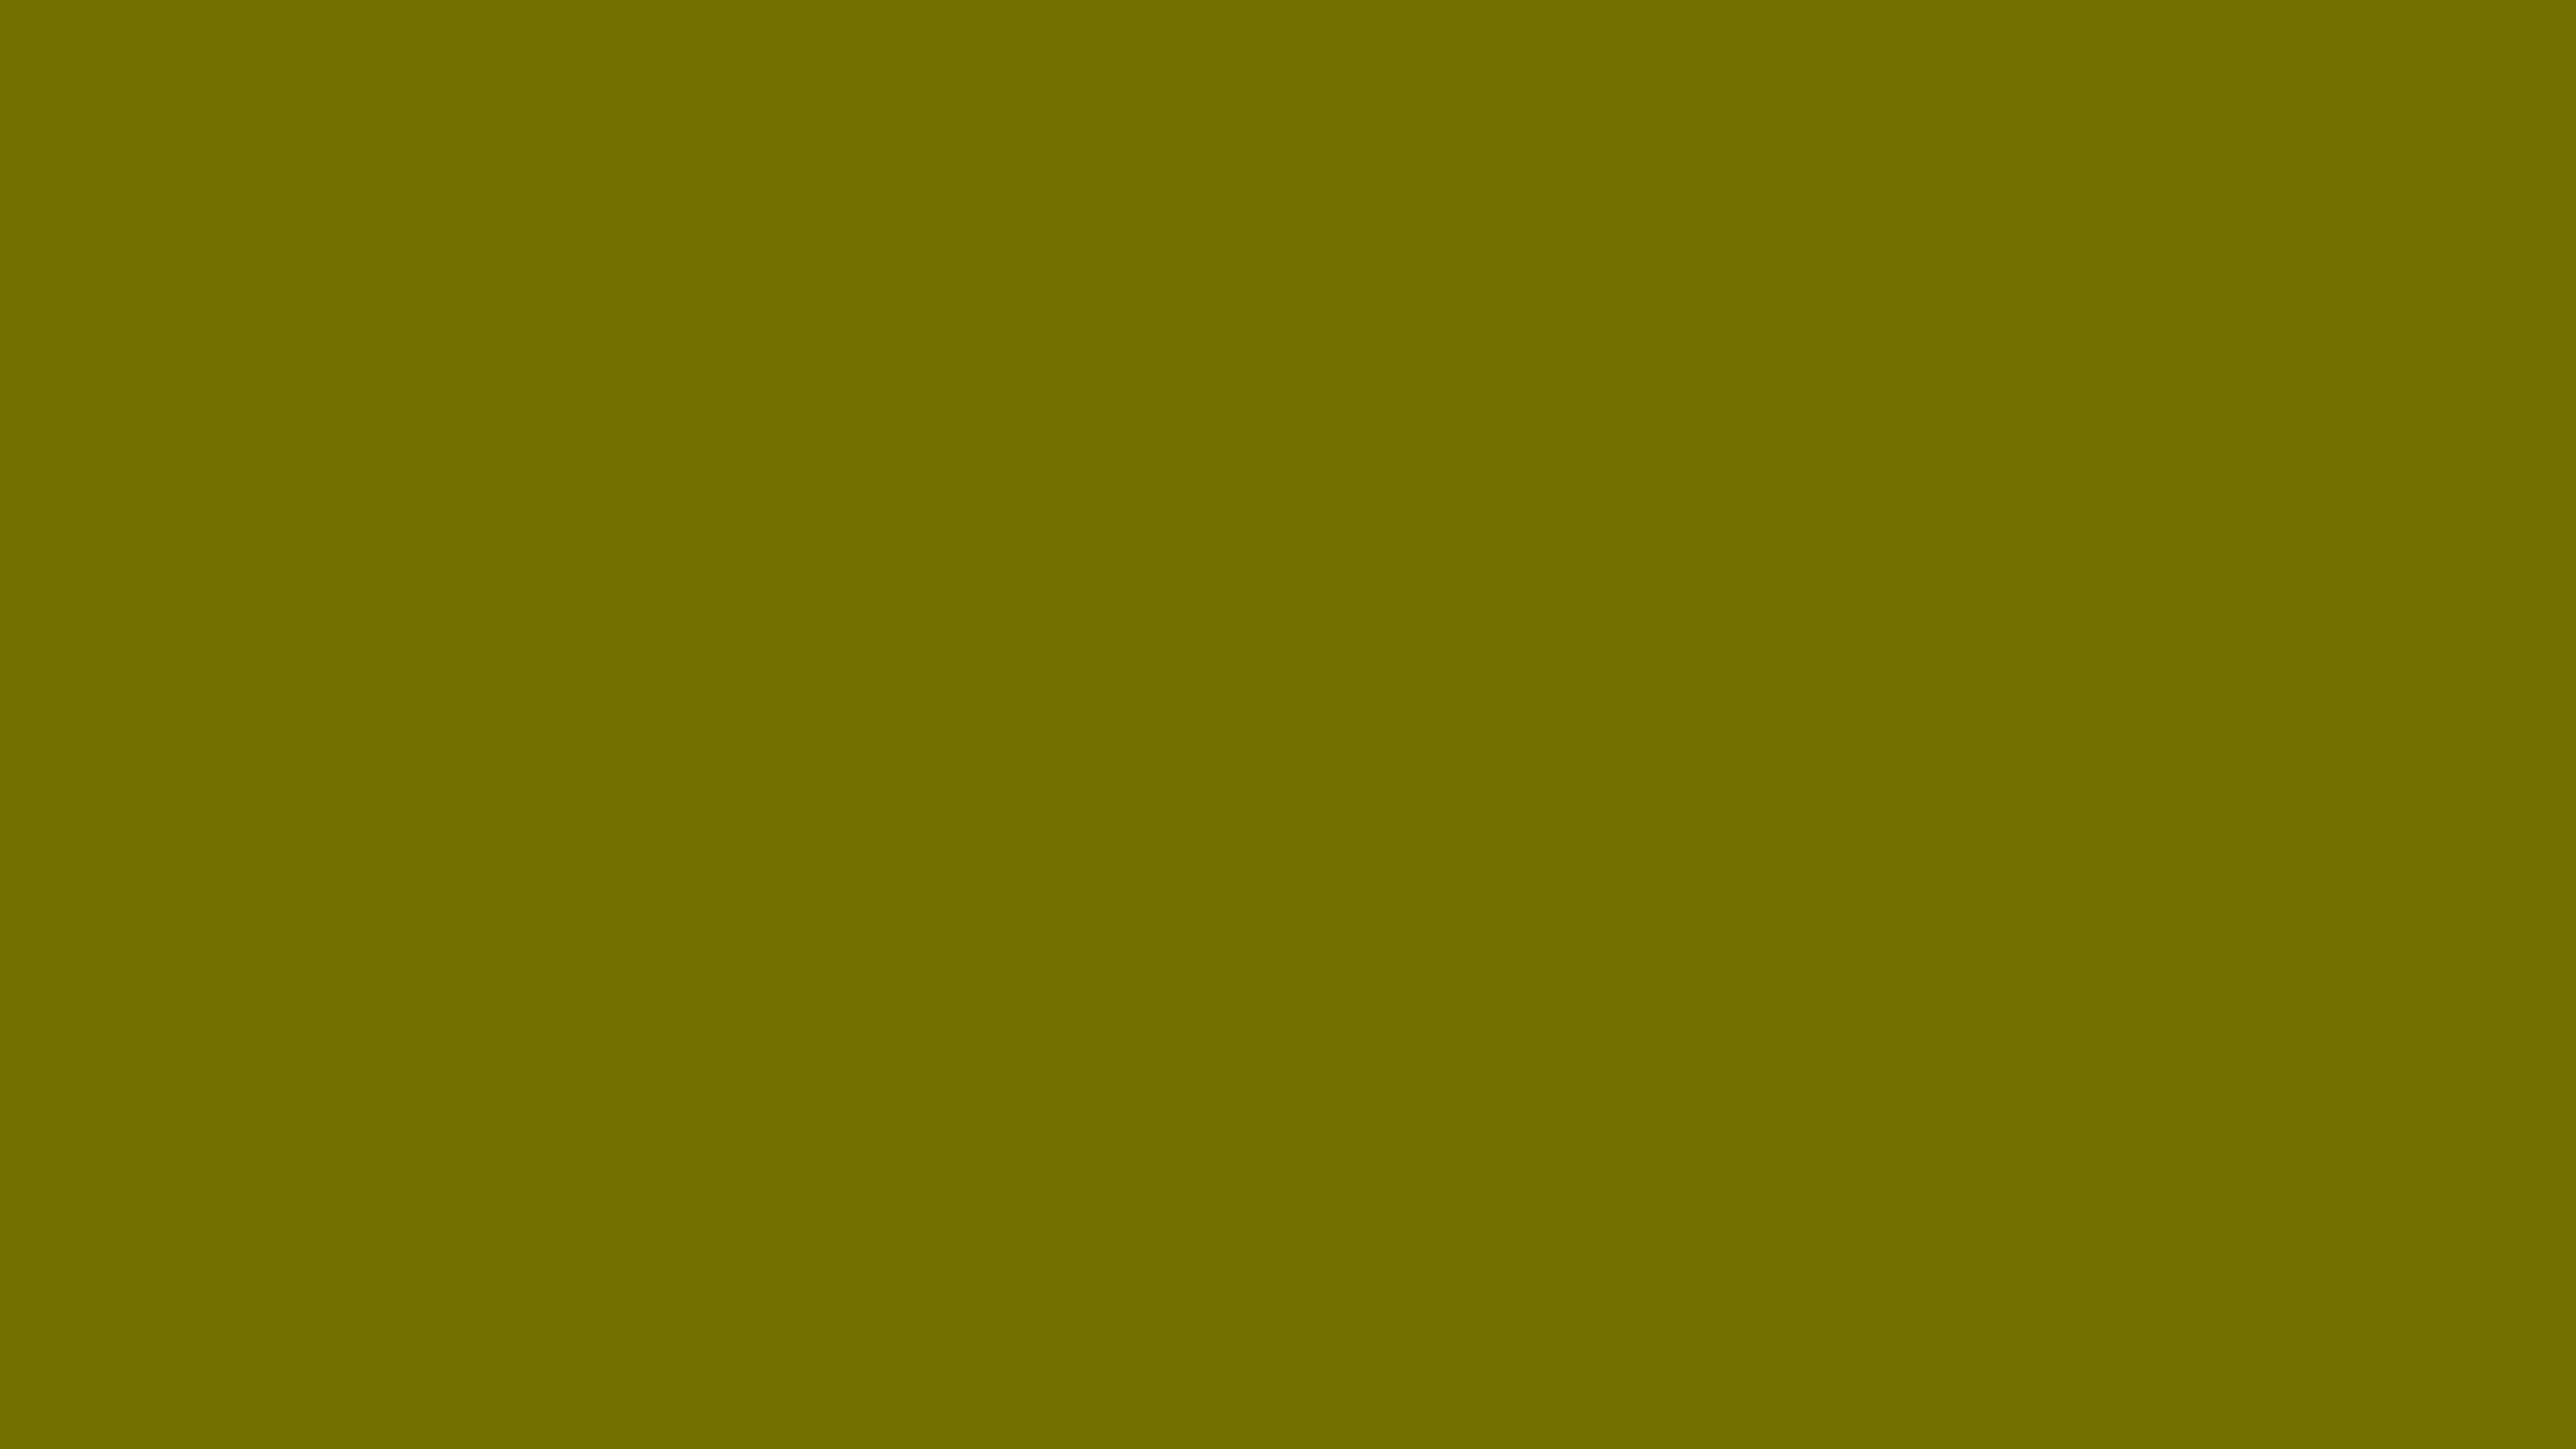 7680x4320 Bronze Yellow Solid Color Background